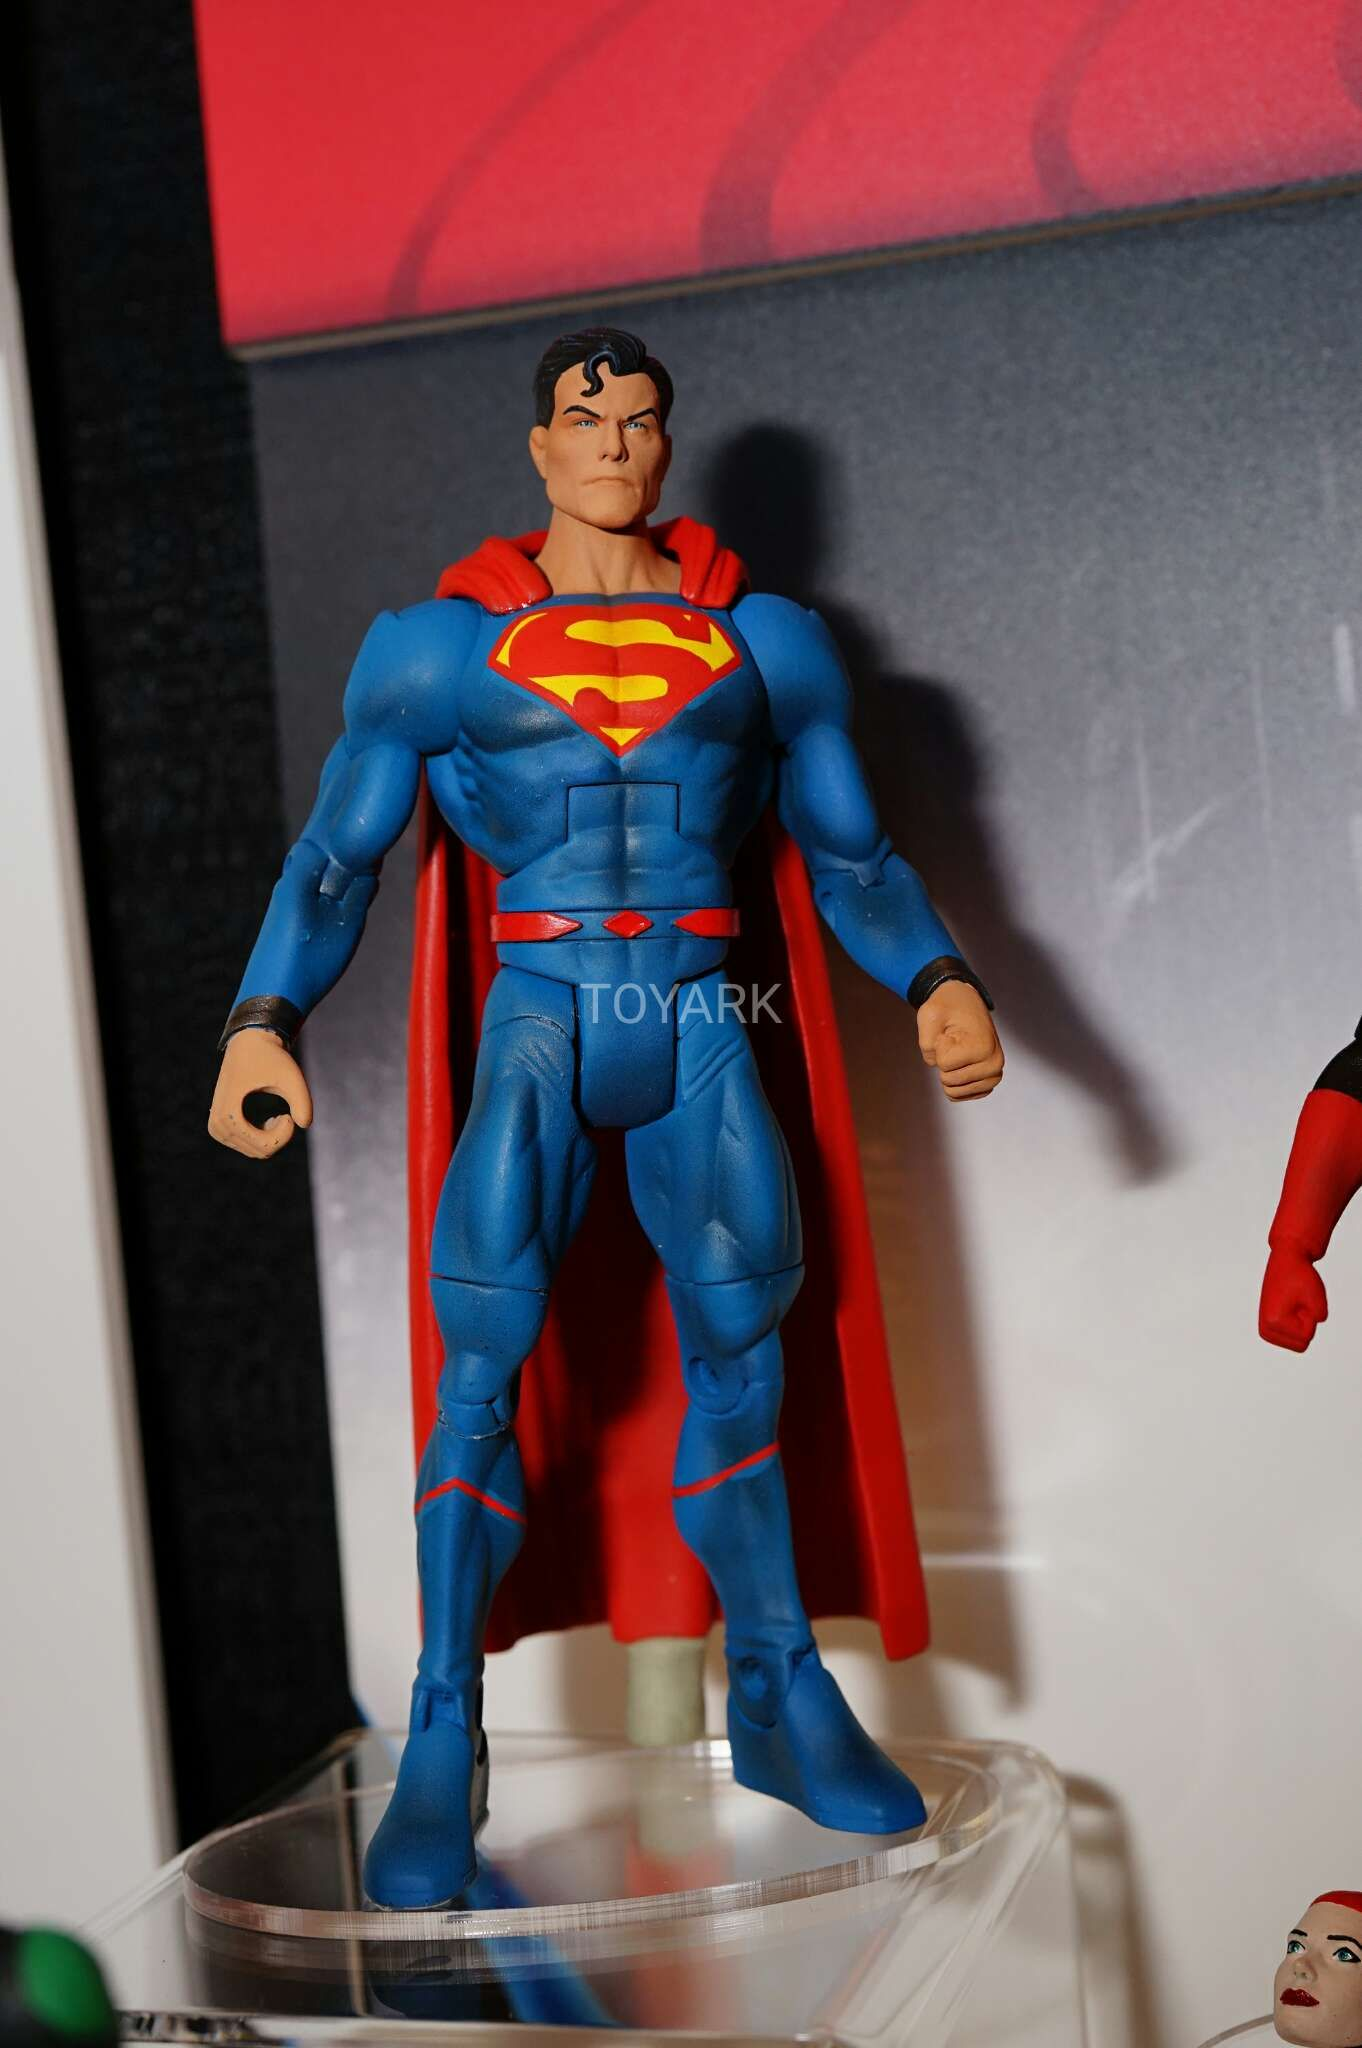 Mattel Had A Bunch Of Dc Comics Dc Movies And Dc Cartoon Figures On Display At Toy Fai Batman And Superman Justice League Action Figures Superman Wonder Woman